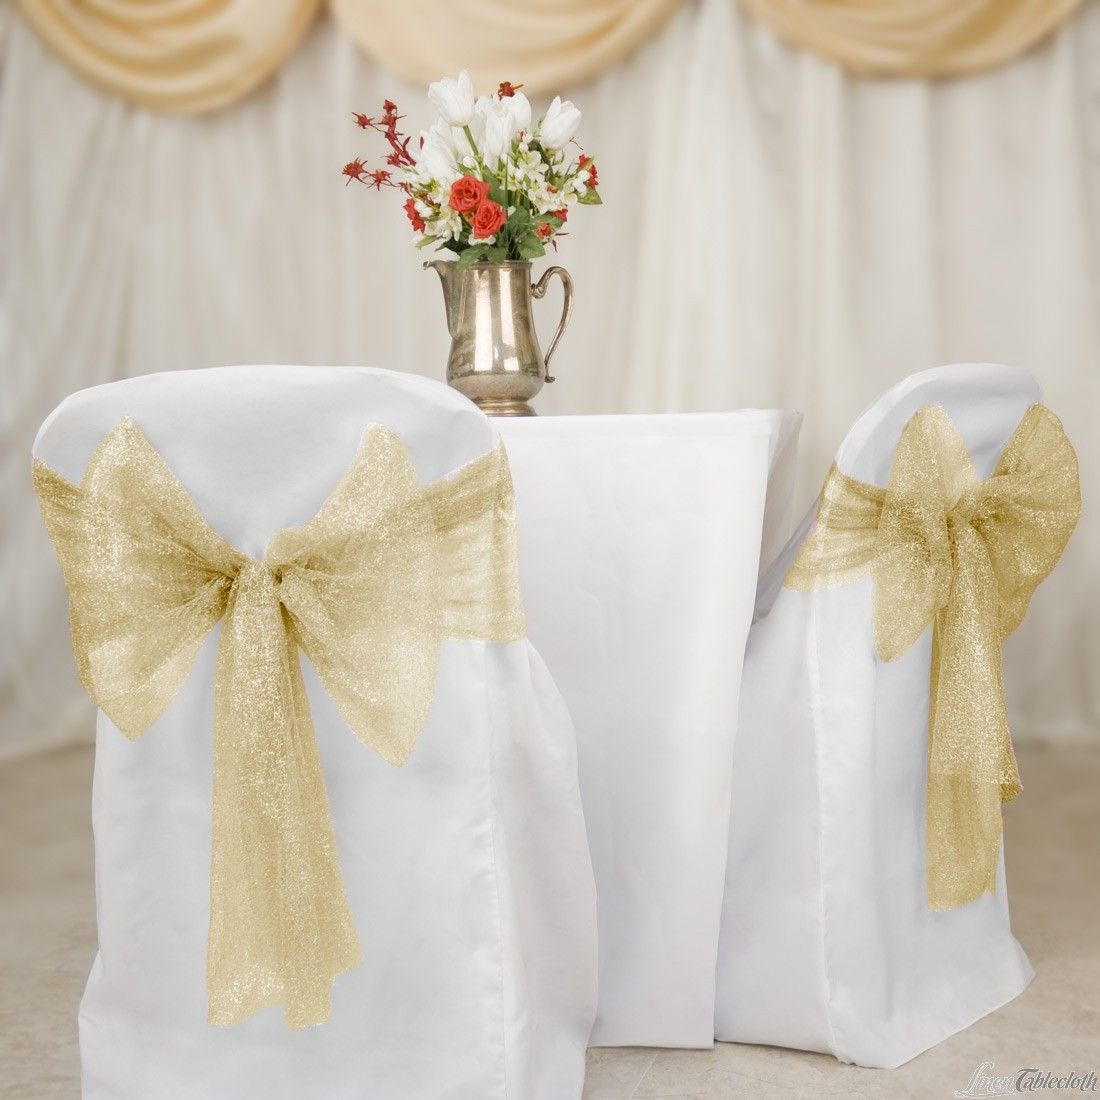 gold chair covers with black sash rattan chairs indoor nz buy metallic web mesh sashes for your wedding